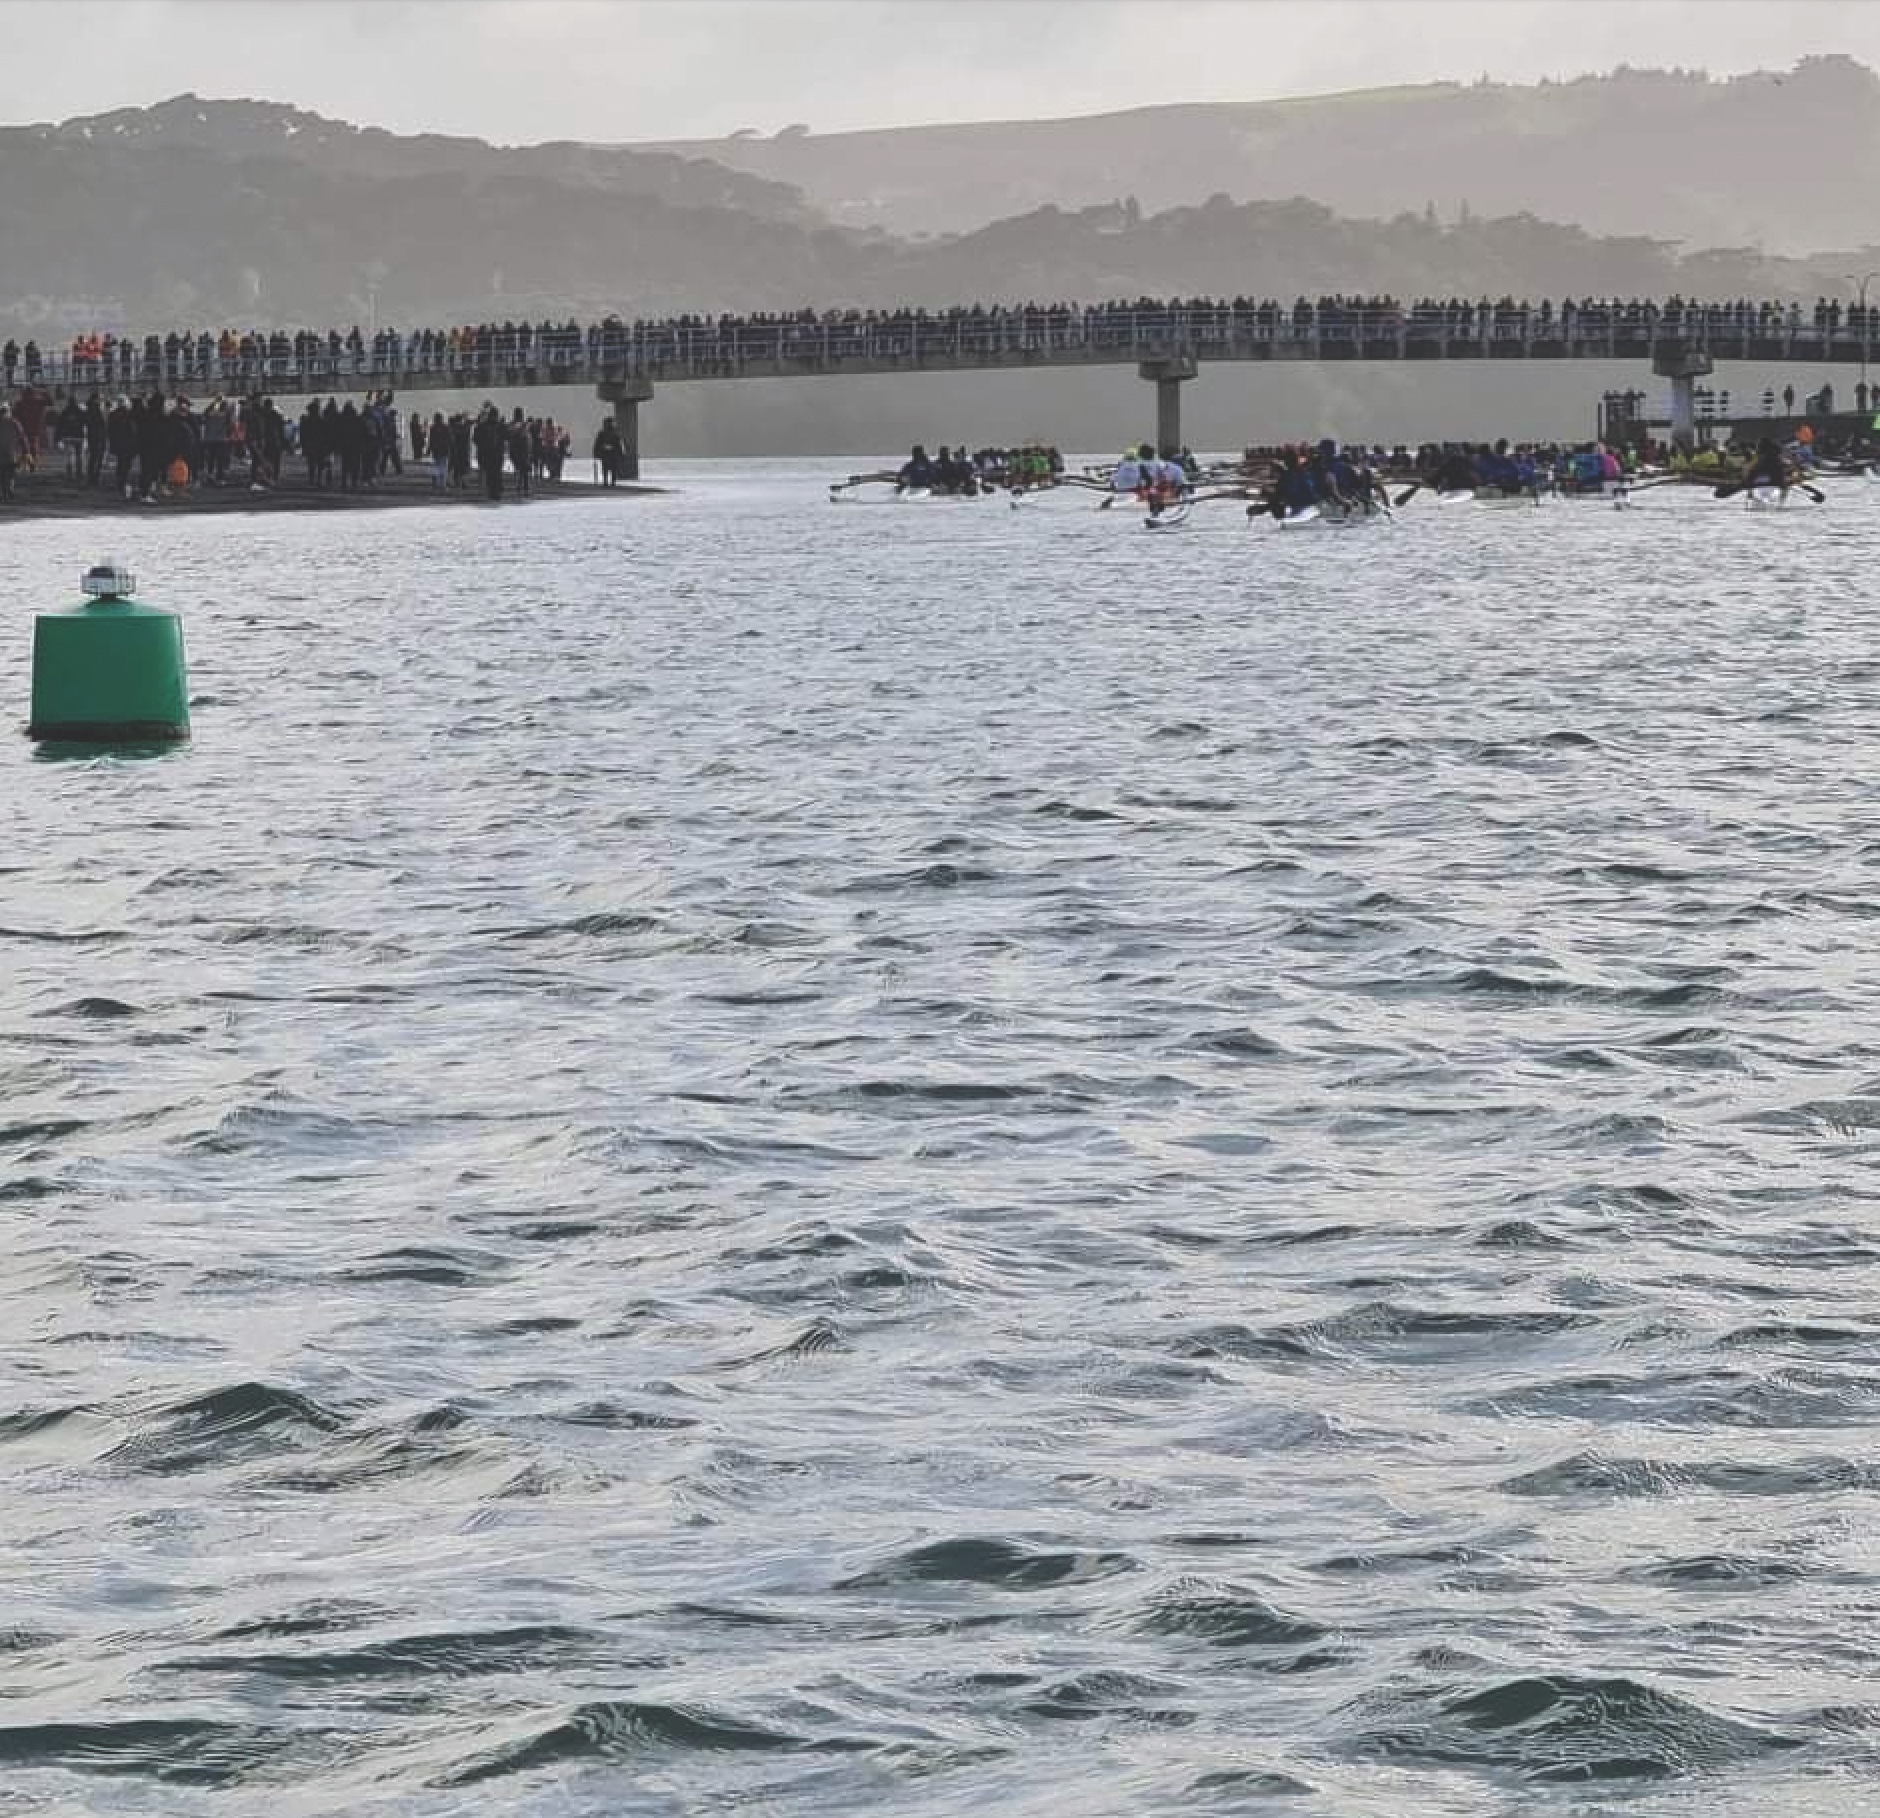 A large crowd watches the hoe from the wakbridge